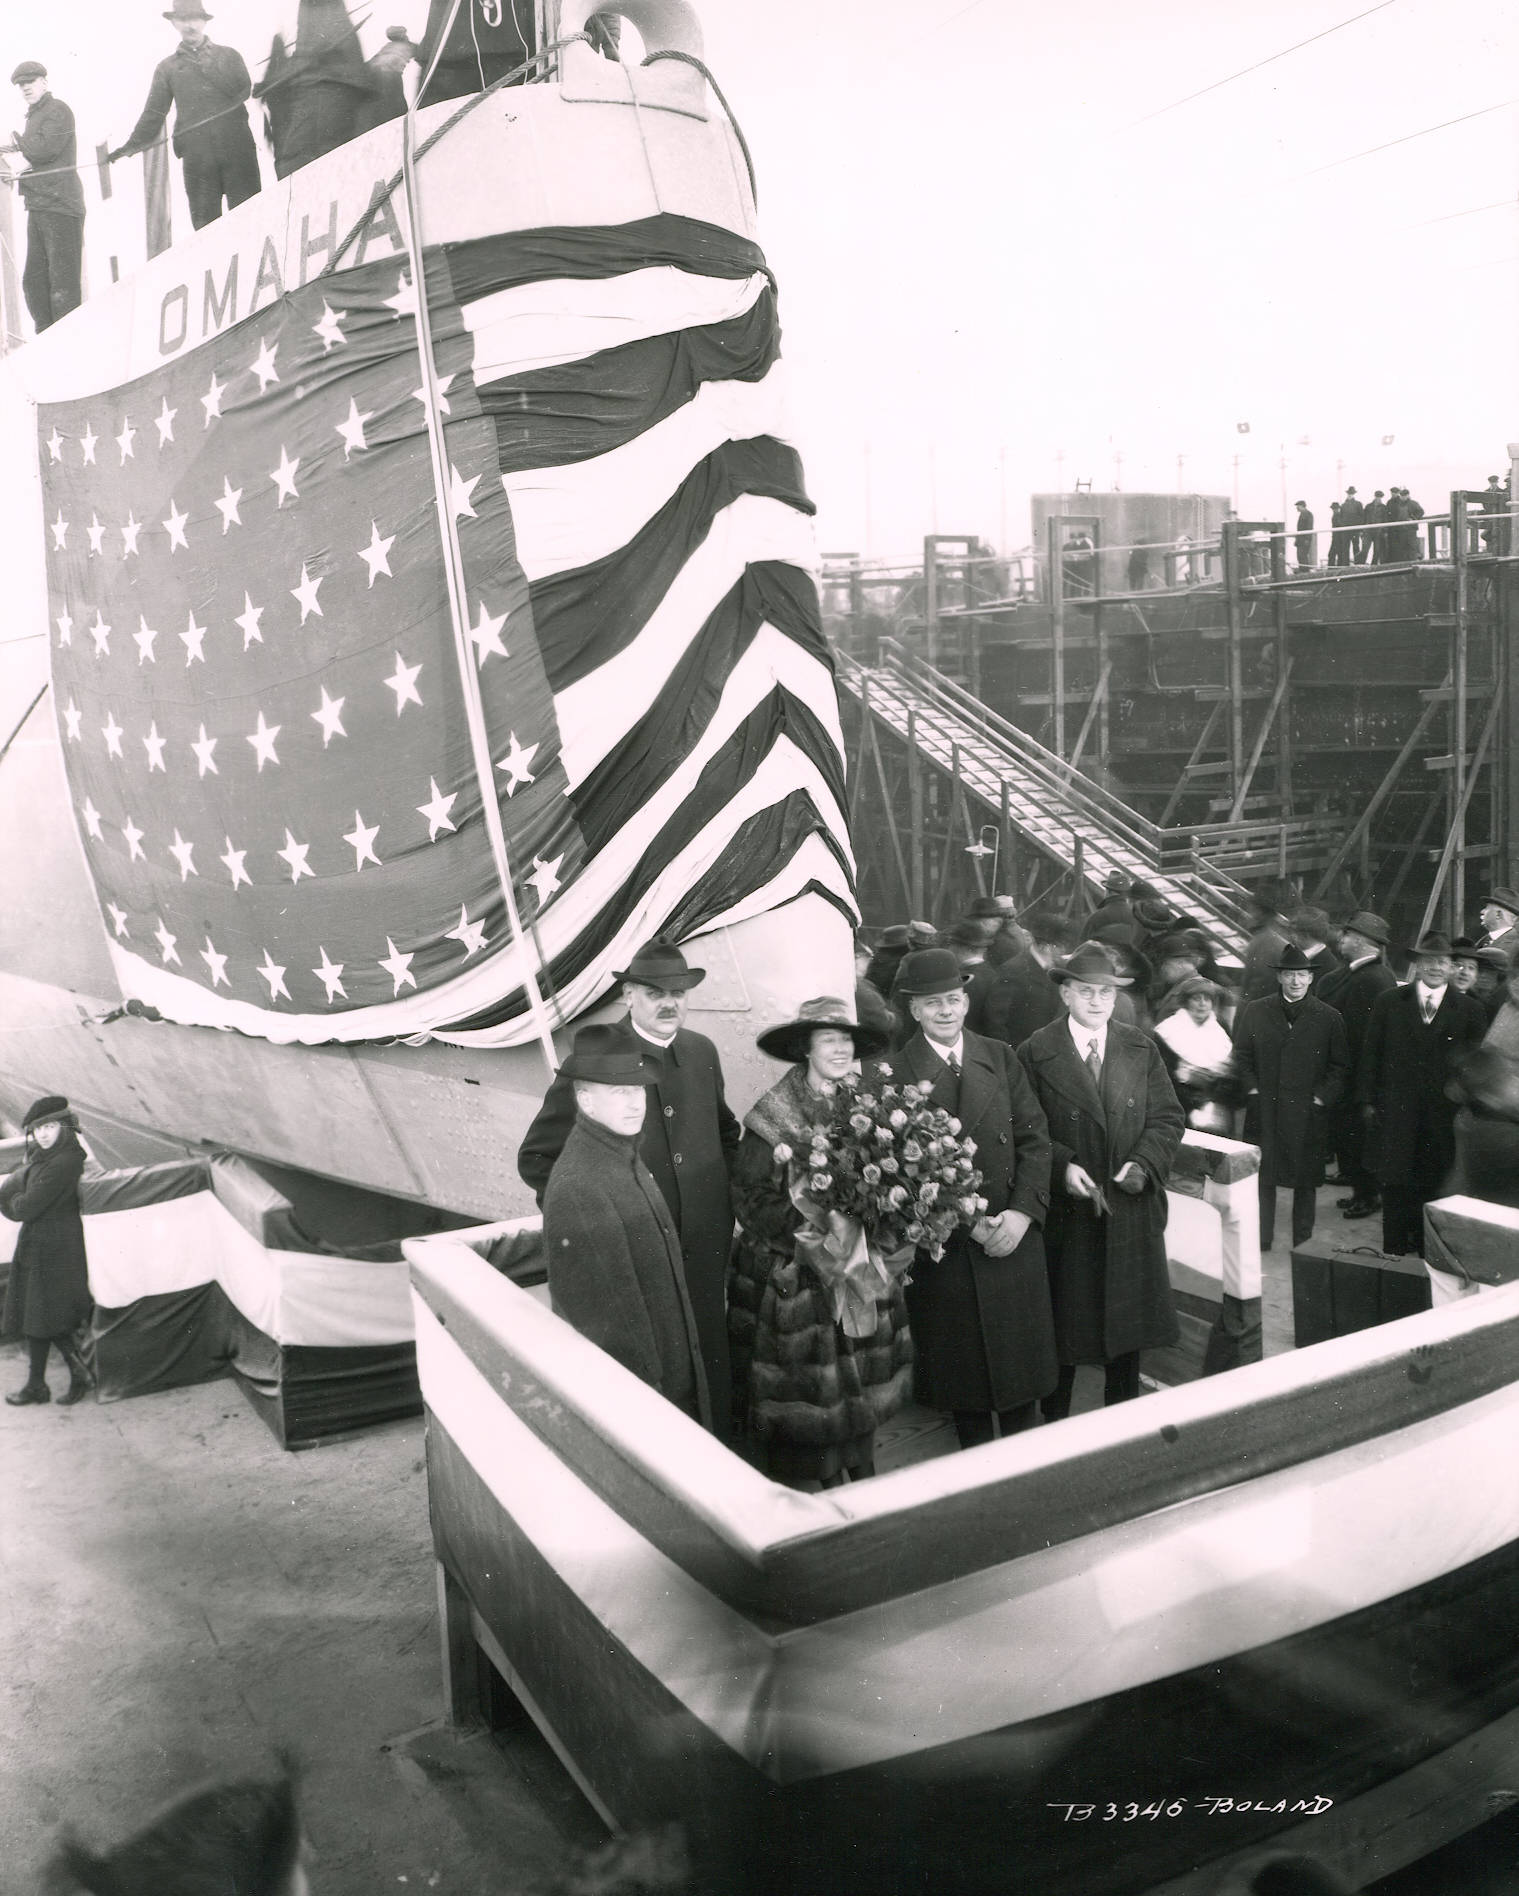 photo of people standing in front of a ship with American flag